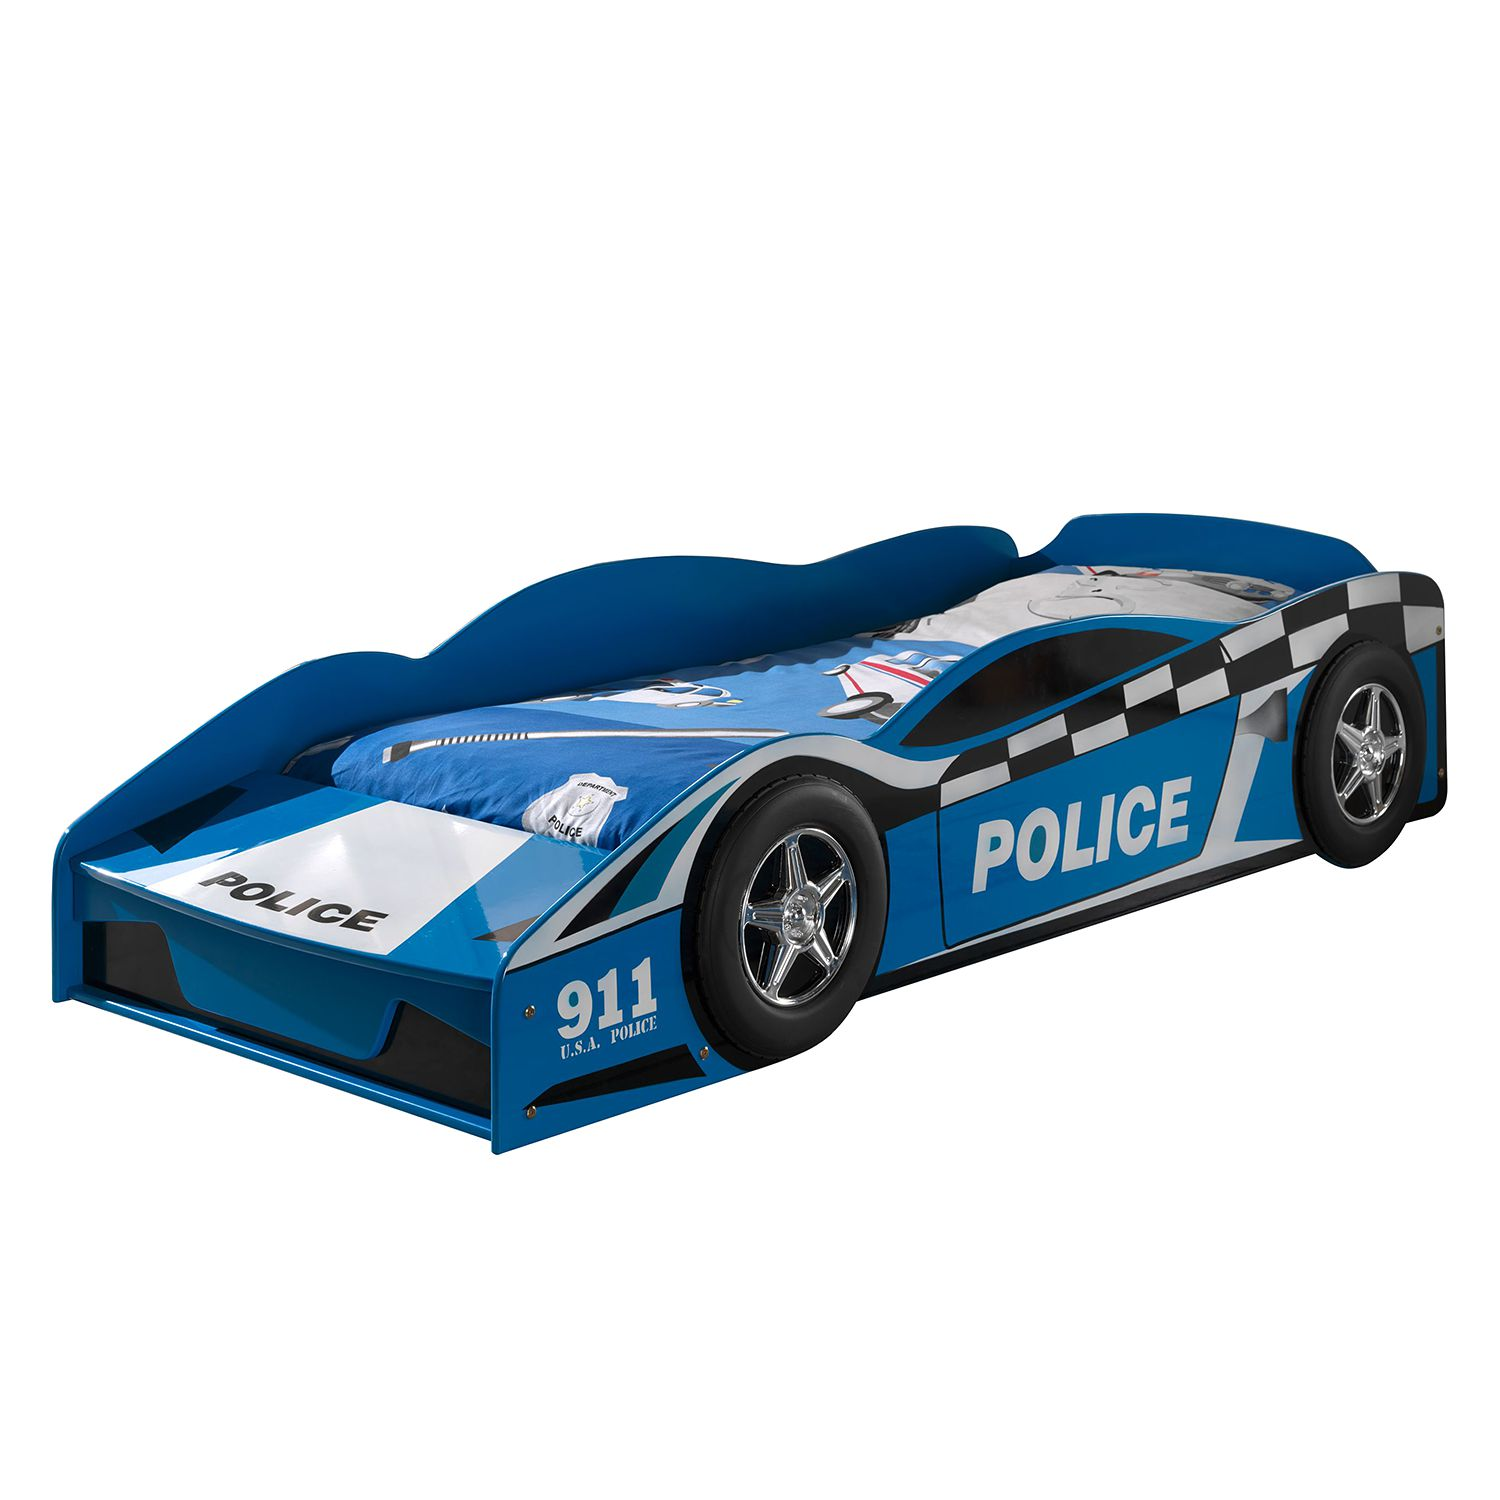 Cars Kinderbett Kinderbett Police Car Kaufen | Home24